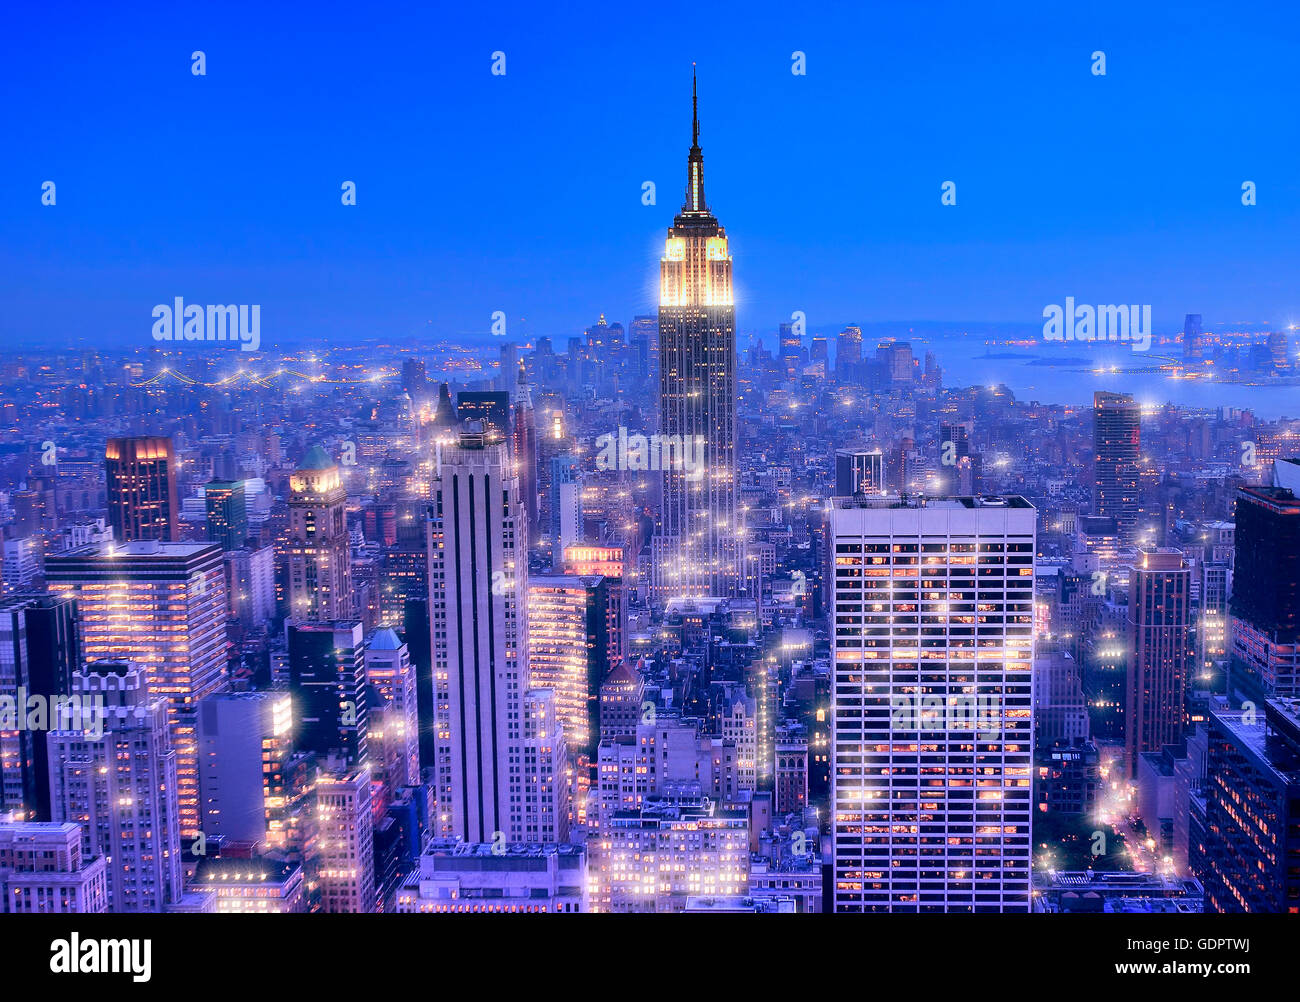 Skyline von Manhattan in der Nacht in New York city Stockbild